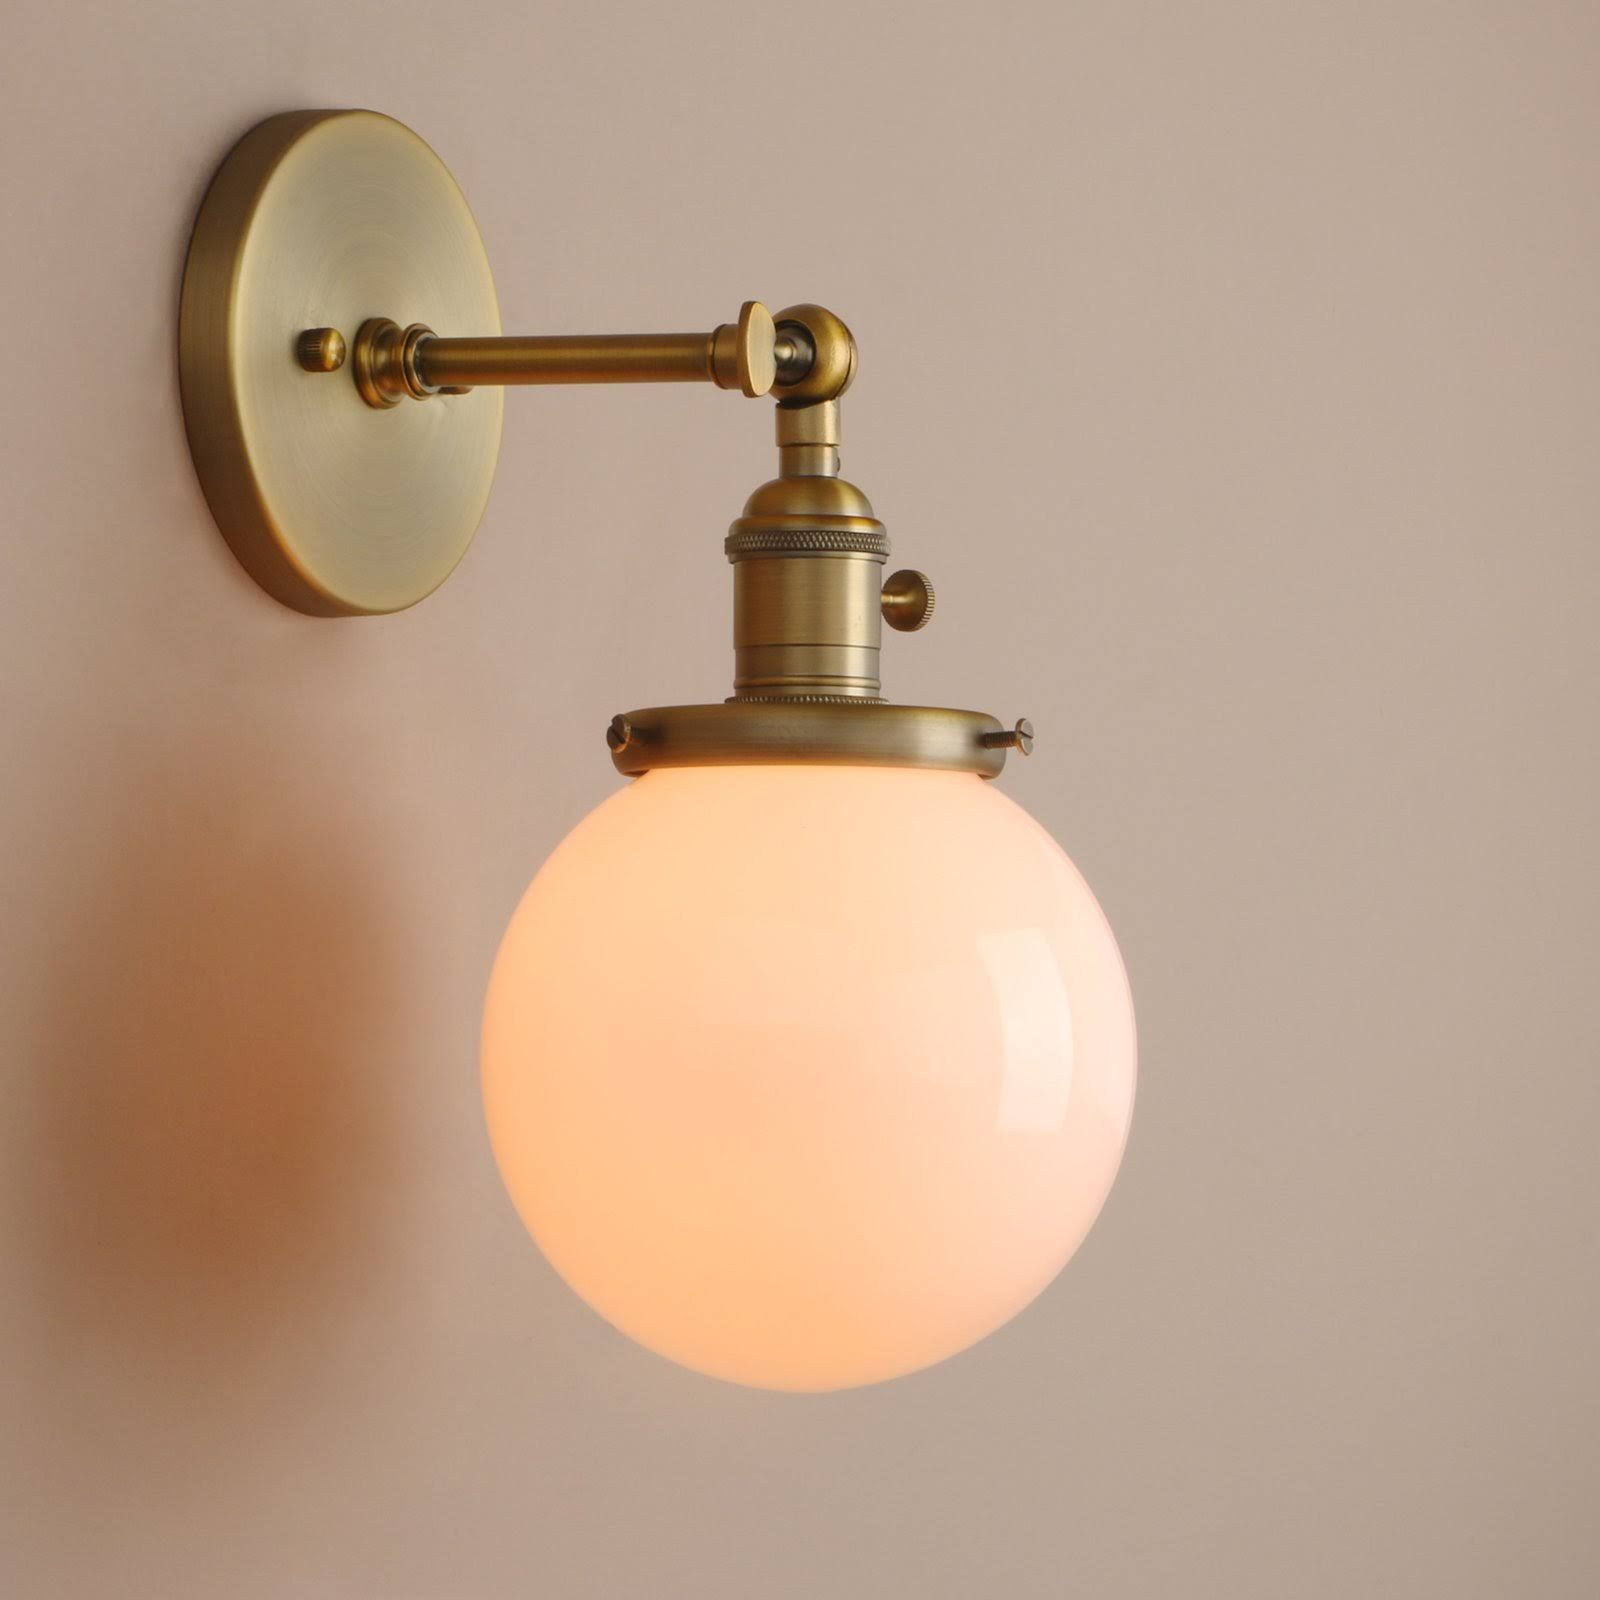 Pathson 1 Light Wall Sconce With White Globe Shade Metal Base